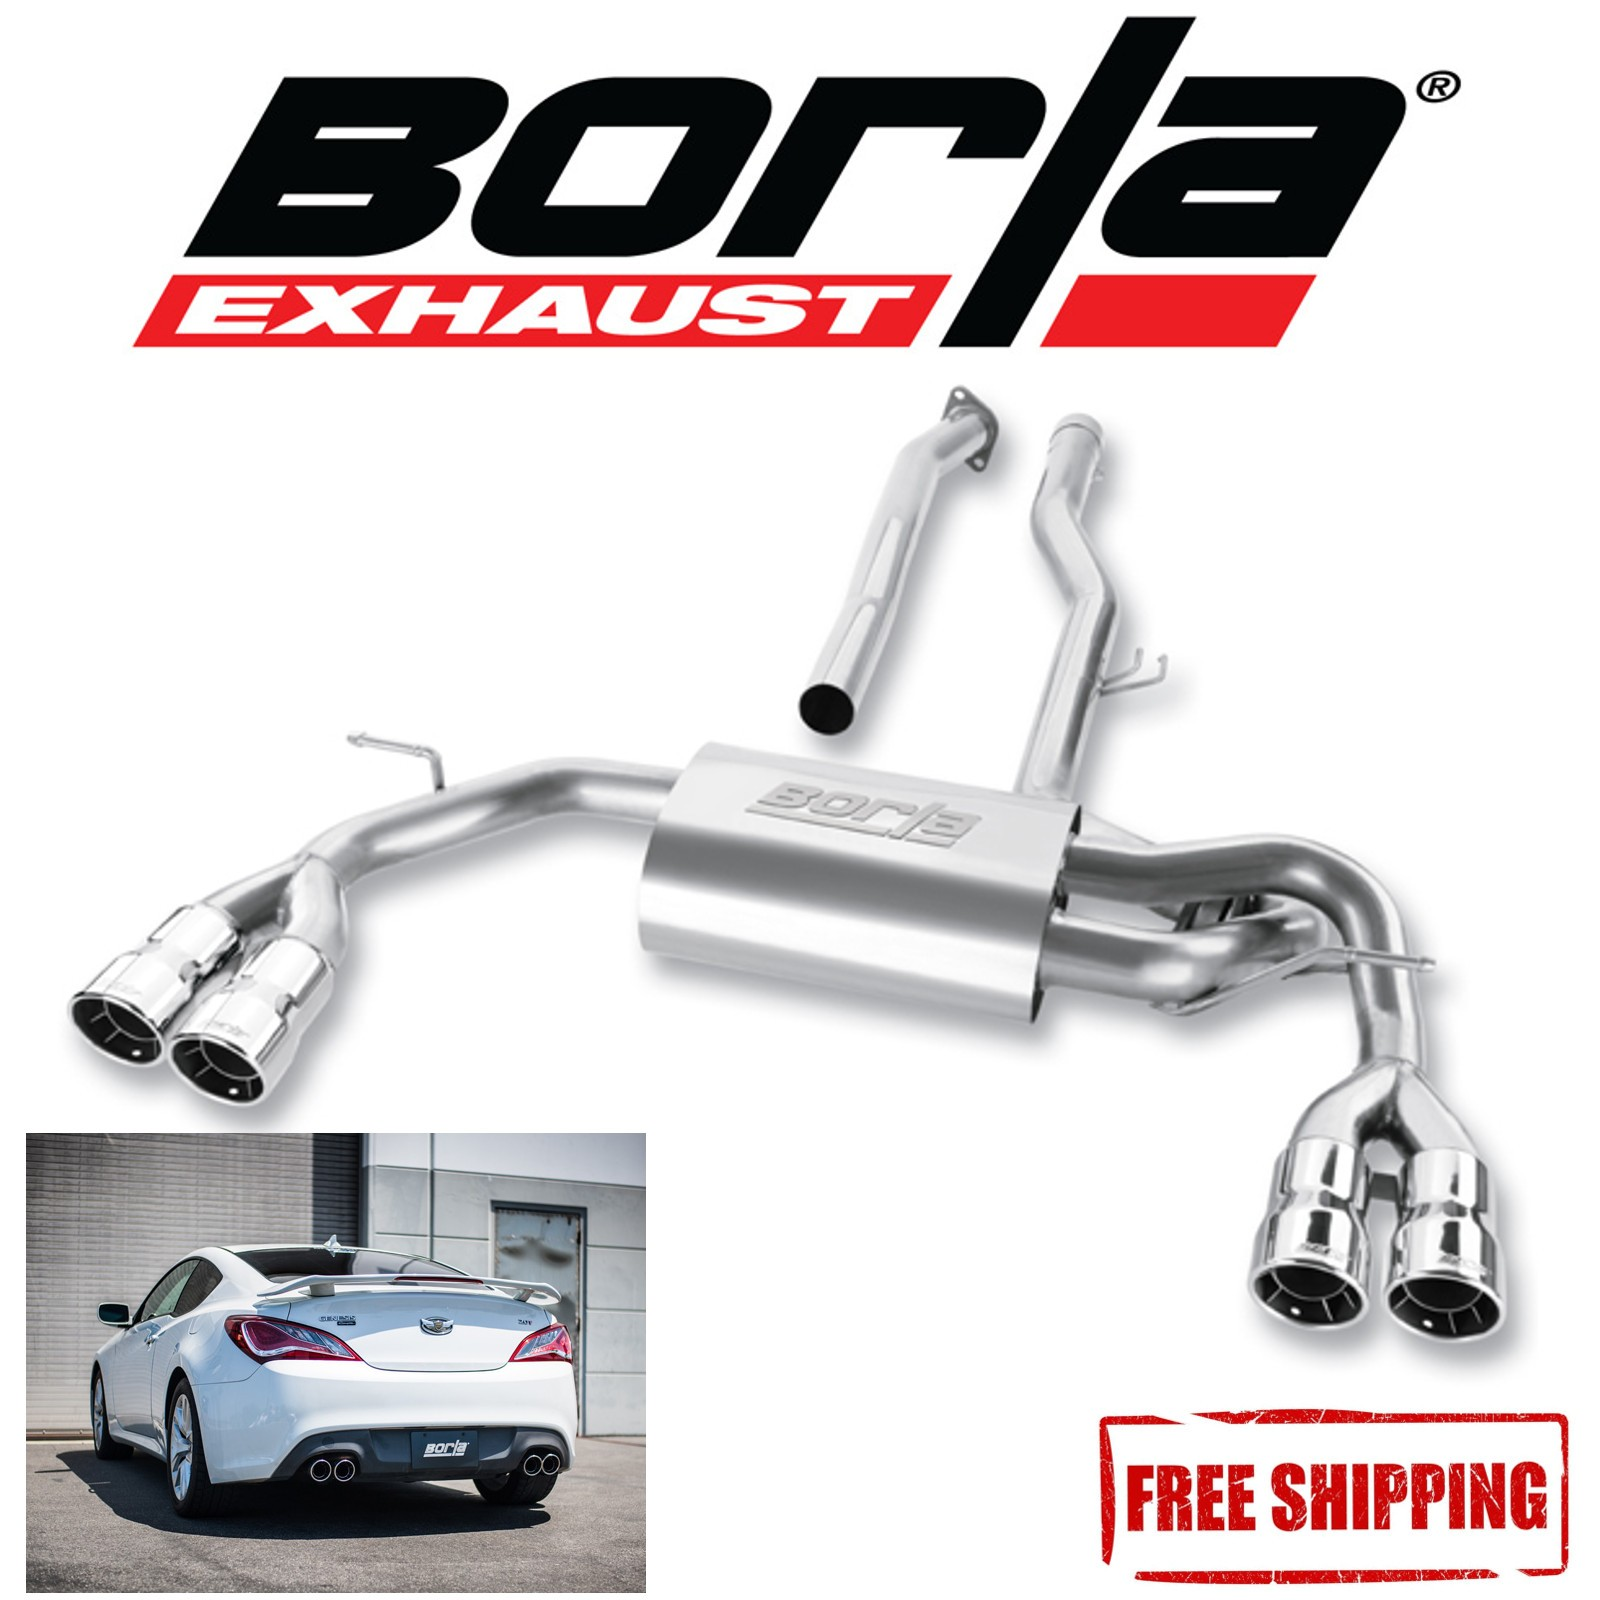 details about borla s type cat back performance exhaust for 10 14 hyundai genesis coupe 2 0l